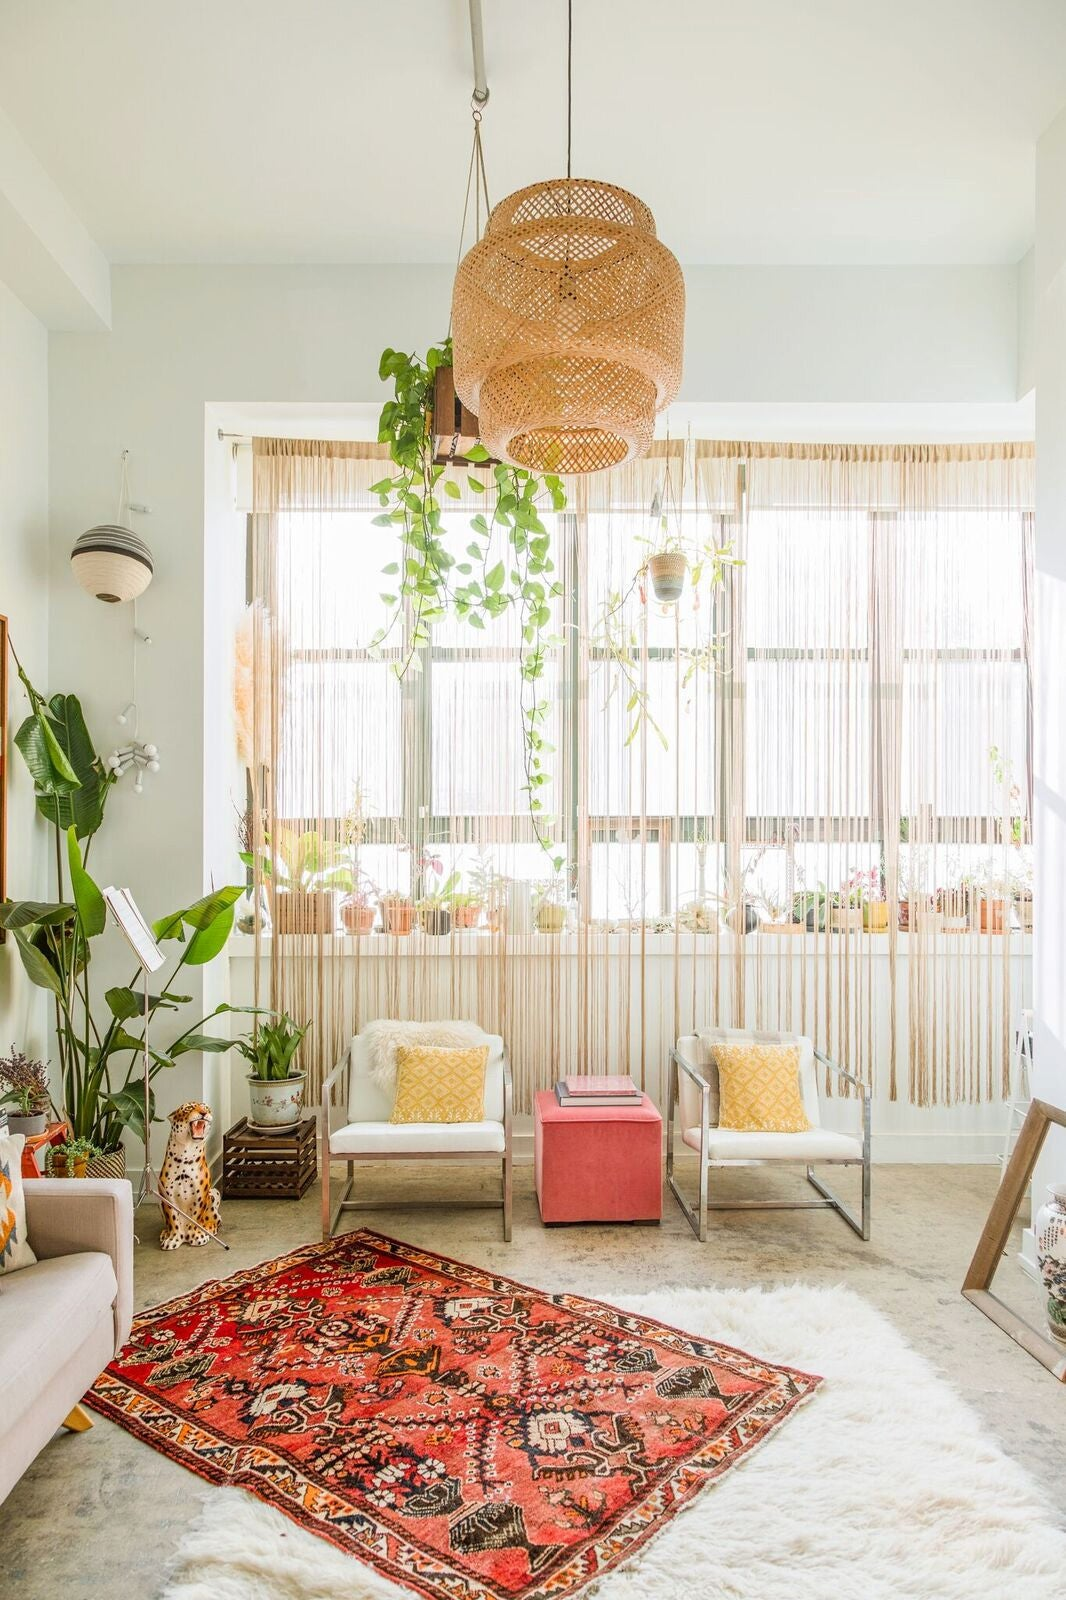 This Colorful, Eclectic Home Used to Be a Factory